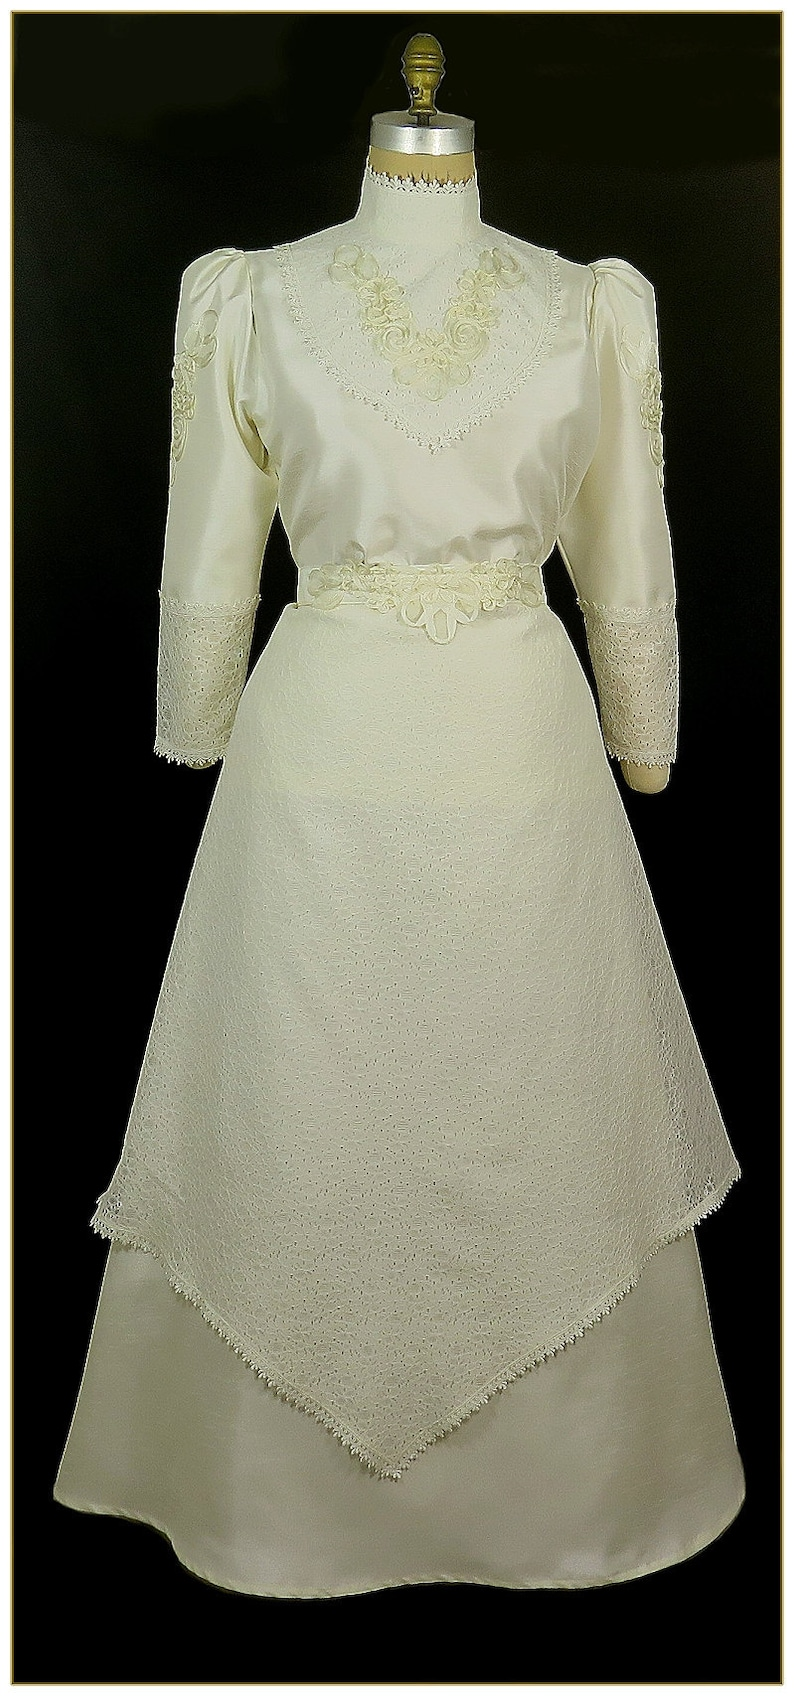 Victorian Dresses | Victorian Ballgowns | Victorian Clothing Antique White Shantung and Lace Skirt $92.00 AT vintagedancer.com